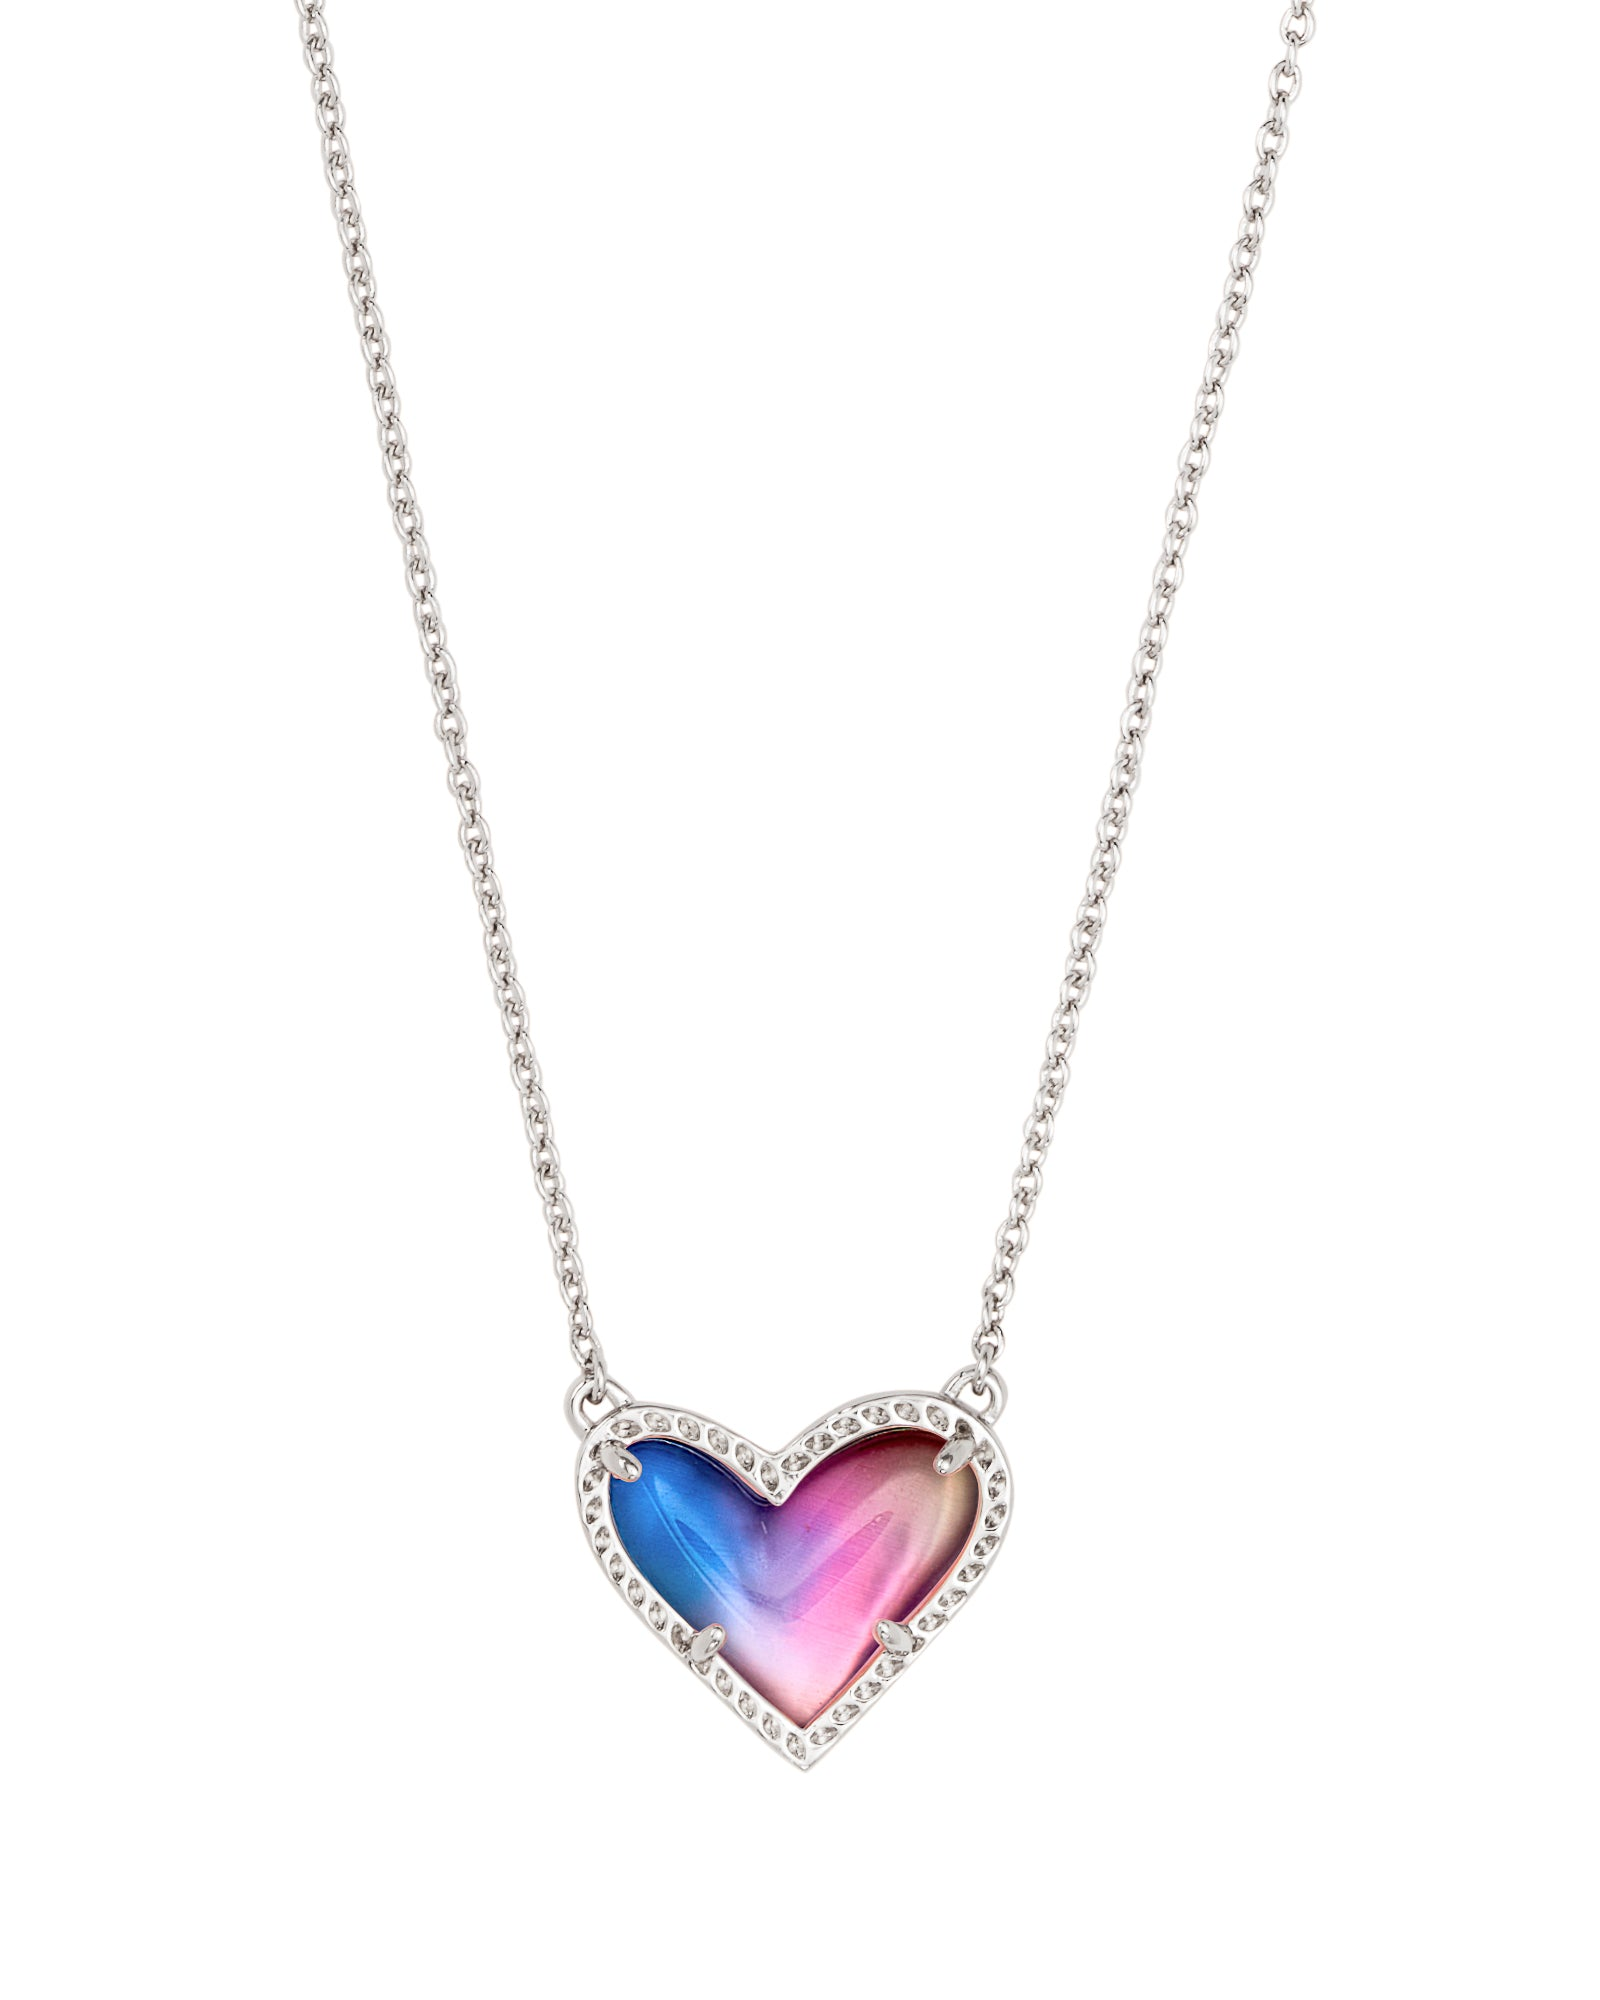 Ari Heart Silver Pendant Necklace In Watercolor Illusion